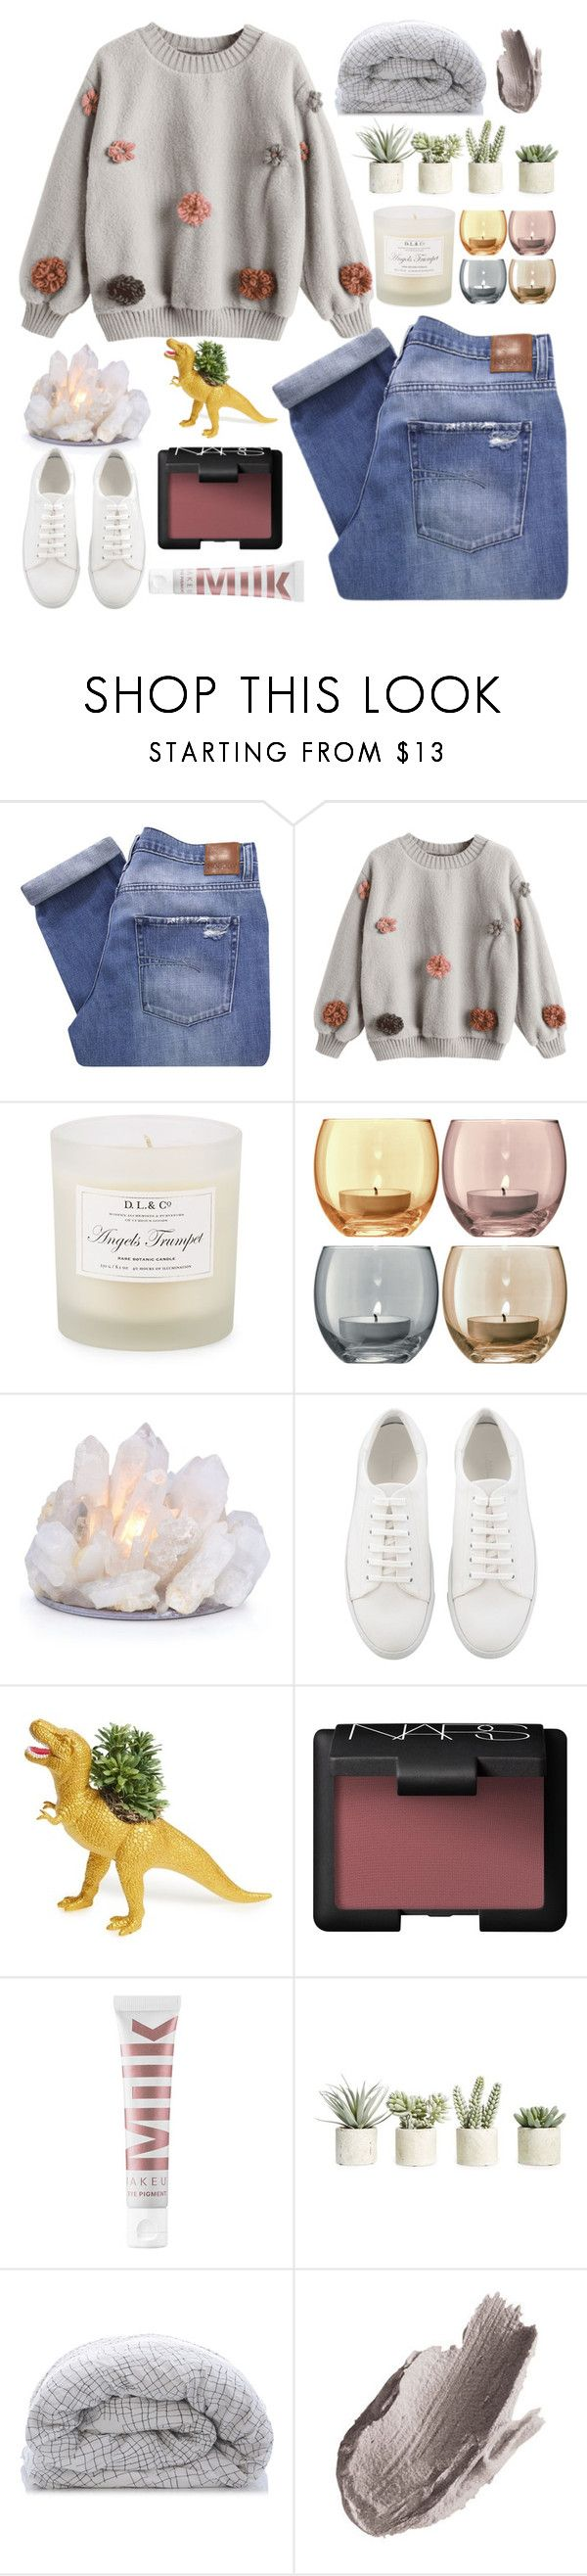 """""""xlviii. YOU'RE A MEAN ONE MR. GRINCH"""" by not-an-apology ❤ liked on Polyvore featuring Nobody Denim, D.L. & Co., LSA International, The Plaid Pigeon, NARS Cosmetics, MILK MAKEUP, Allstate Floral, La Prairie and naasimplesets"""